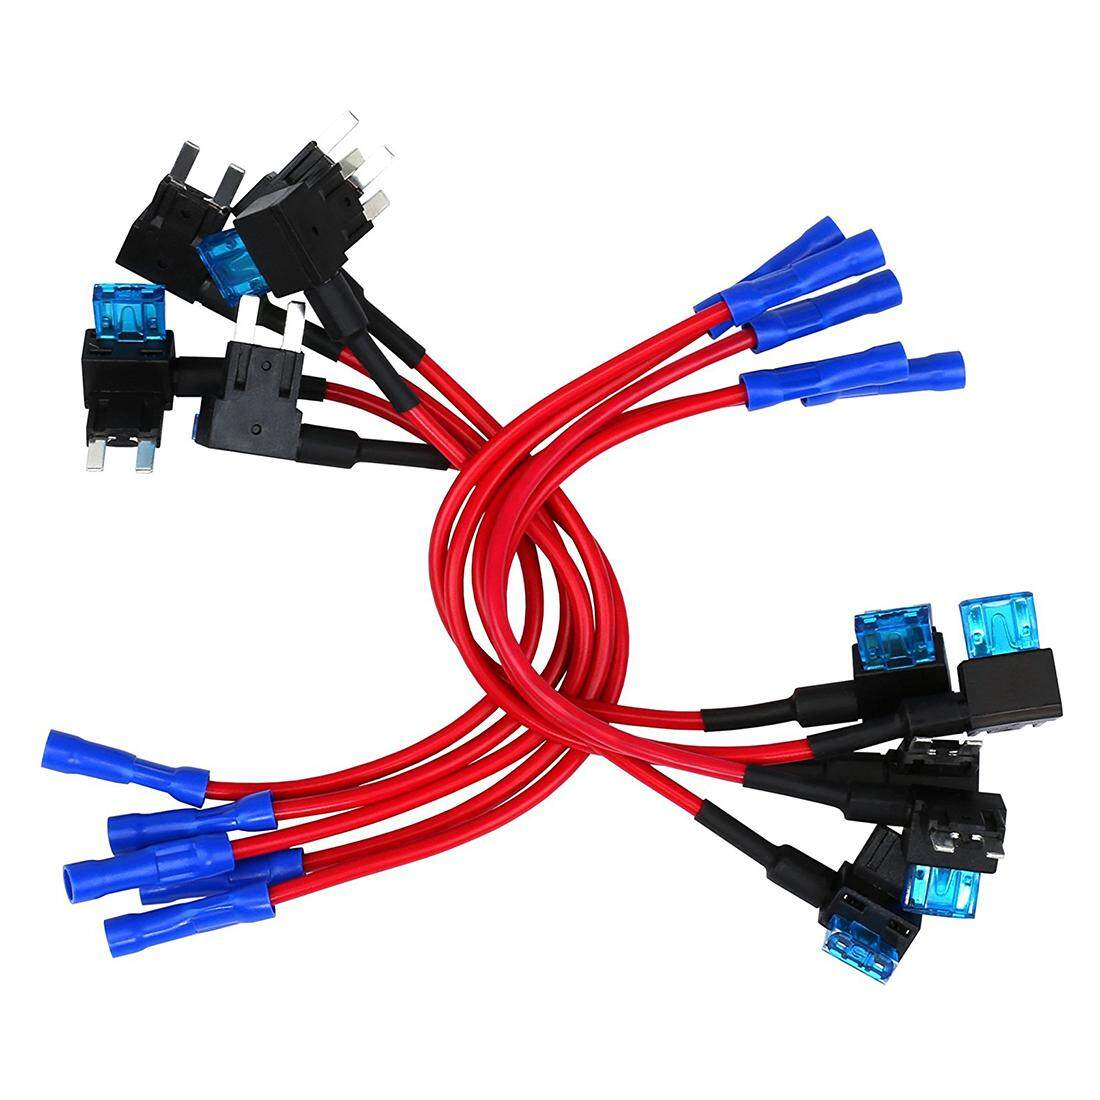 10 Pack - 12v Car Add-A-Circuit Fuse Tap Adapter Mini Atm Apm Blade Fuse Holder - Intl By Sunnny2015